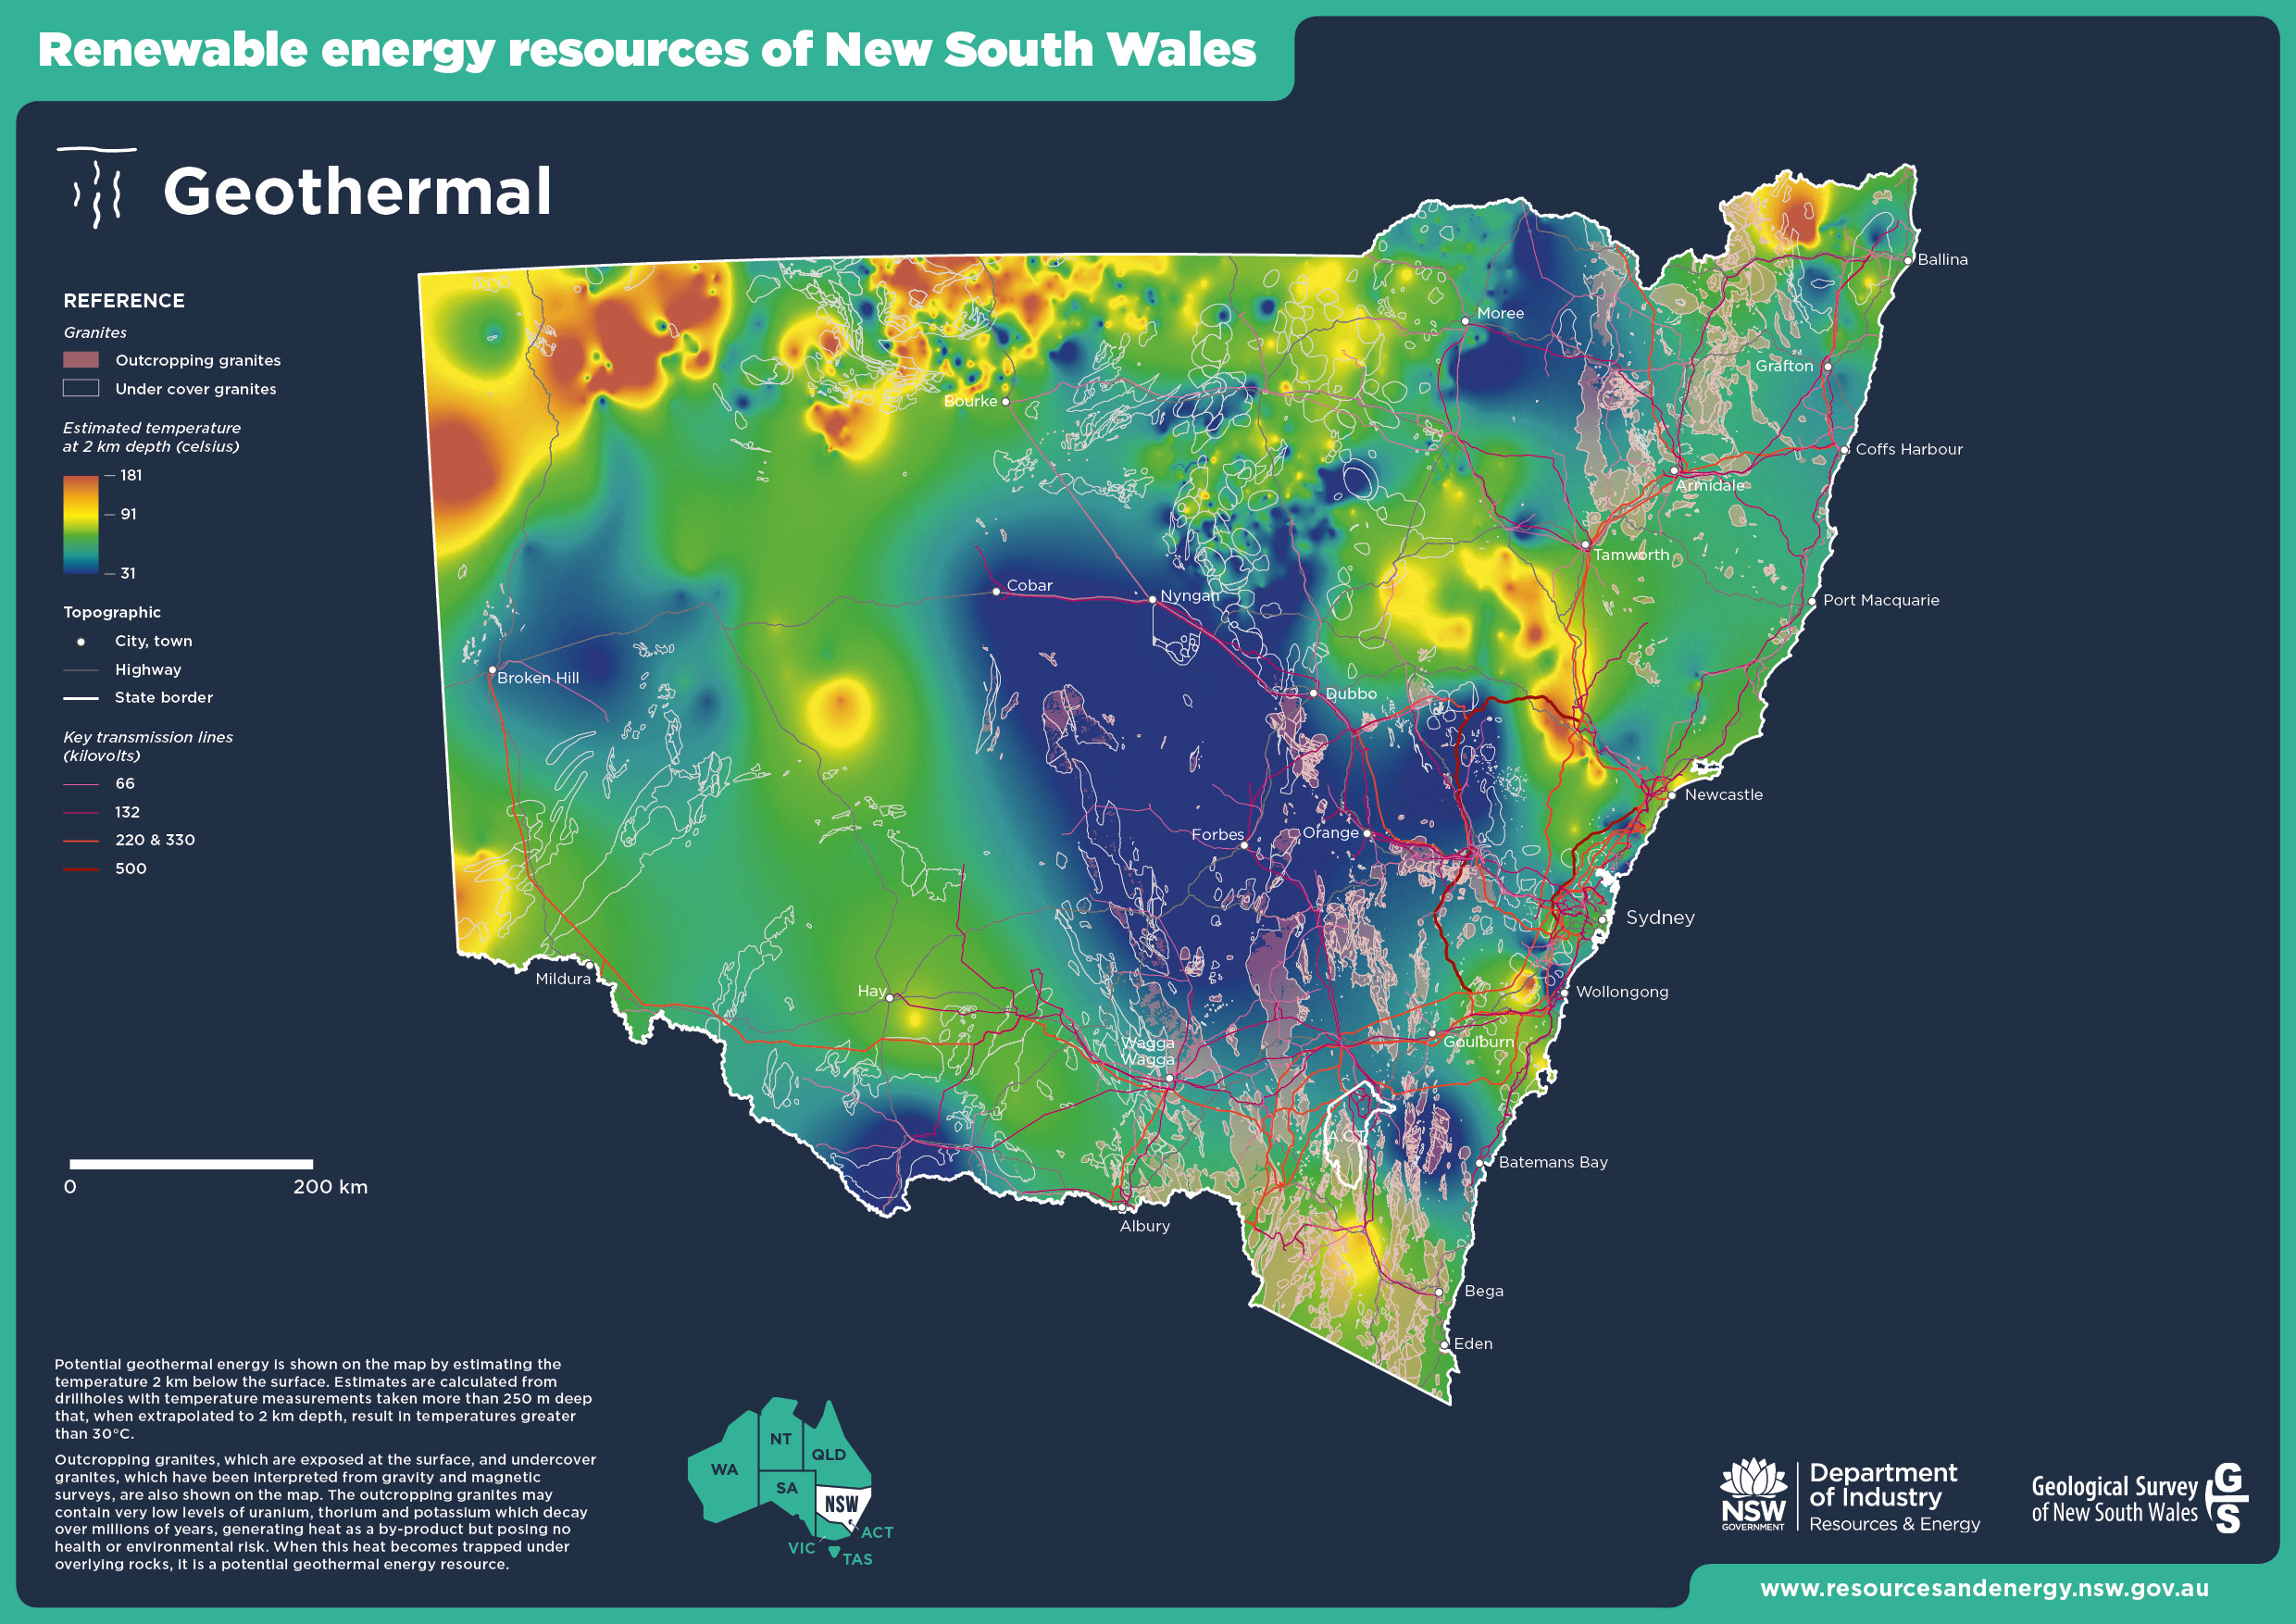 Map of geothermal energy resources of NSW